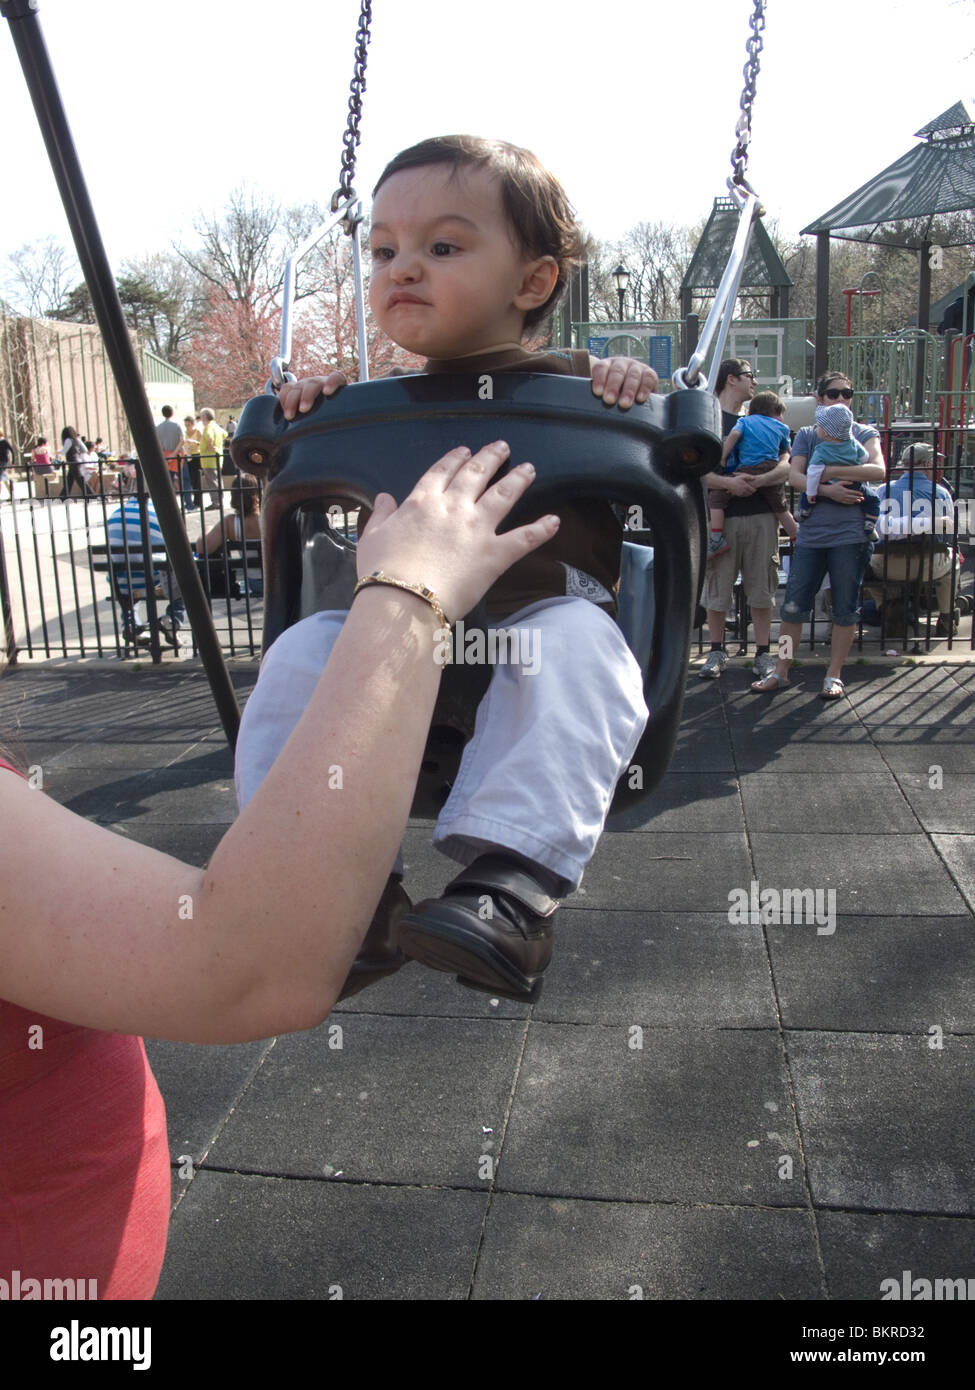 One year old boy on the swings with mom in Prospect Park, Brooklyn, NY - Stock Image